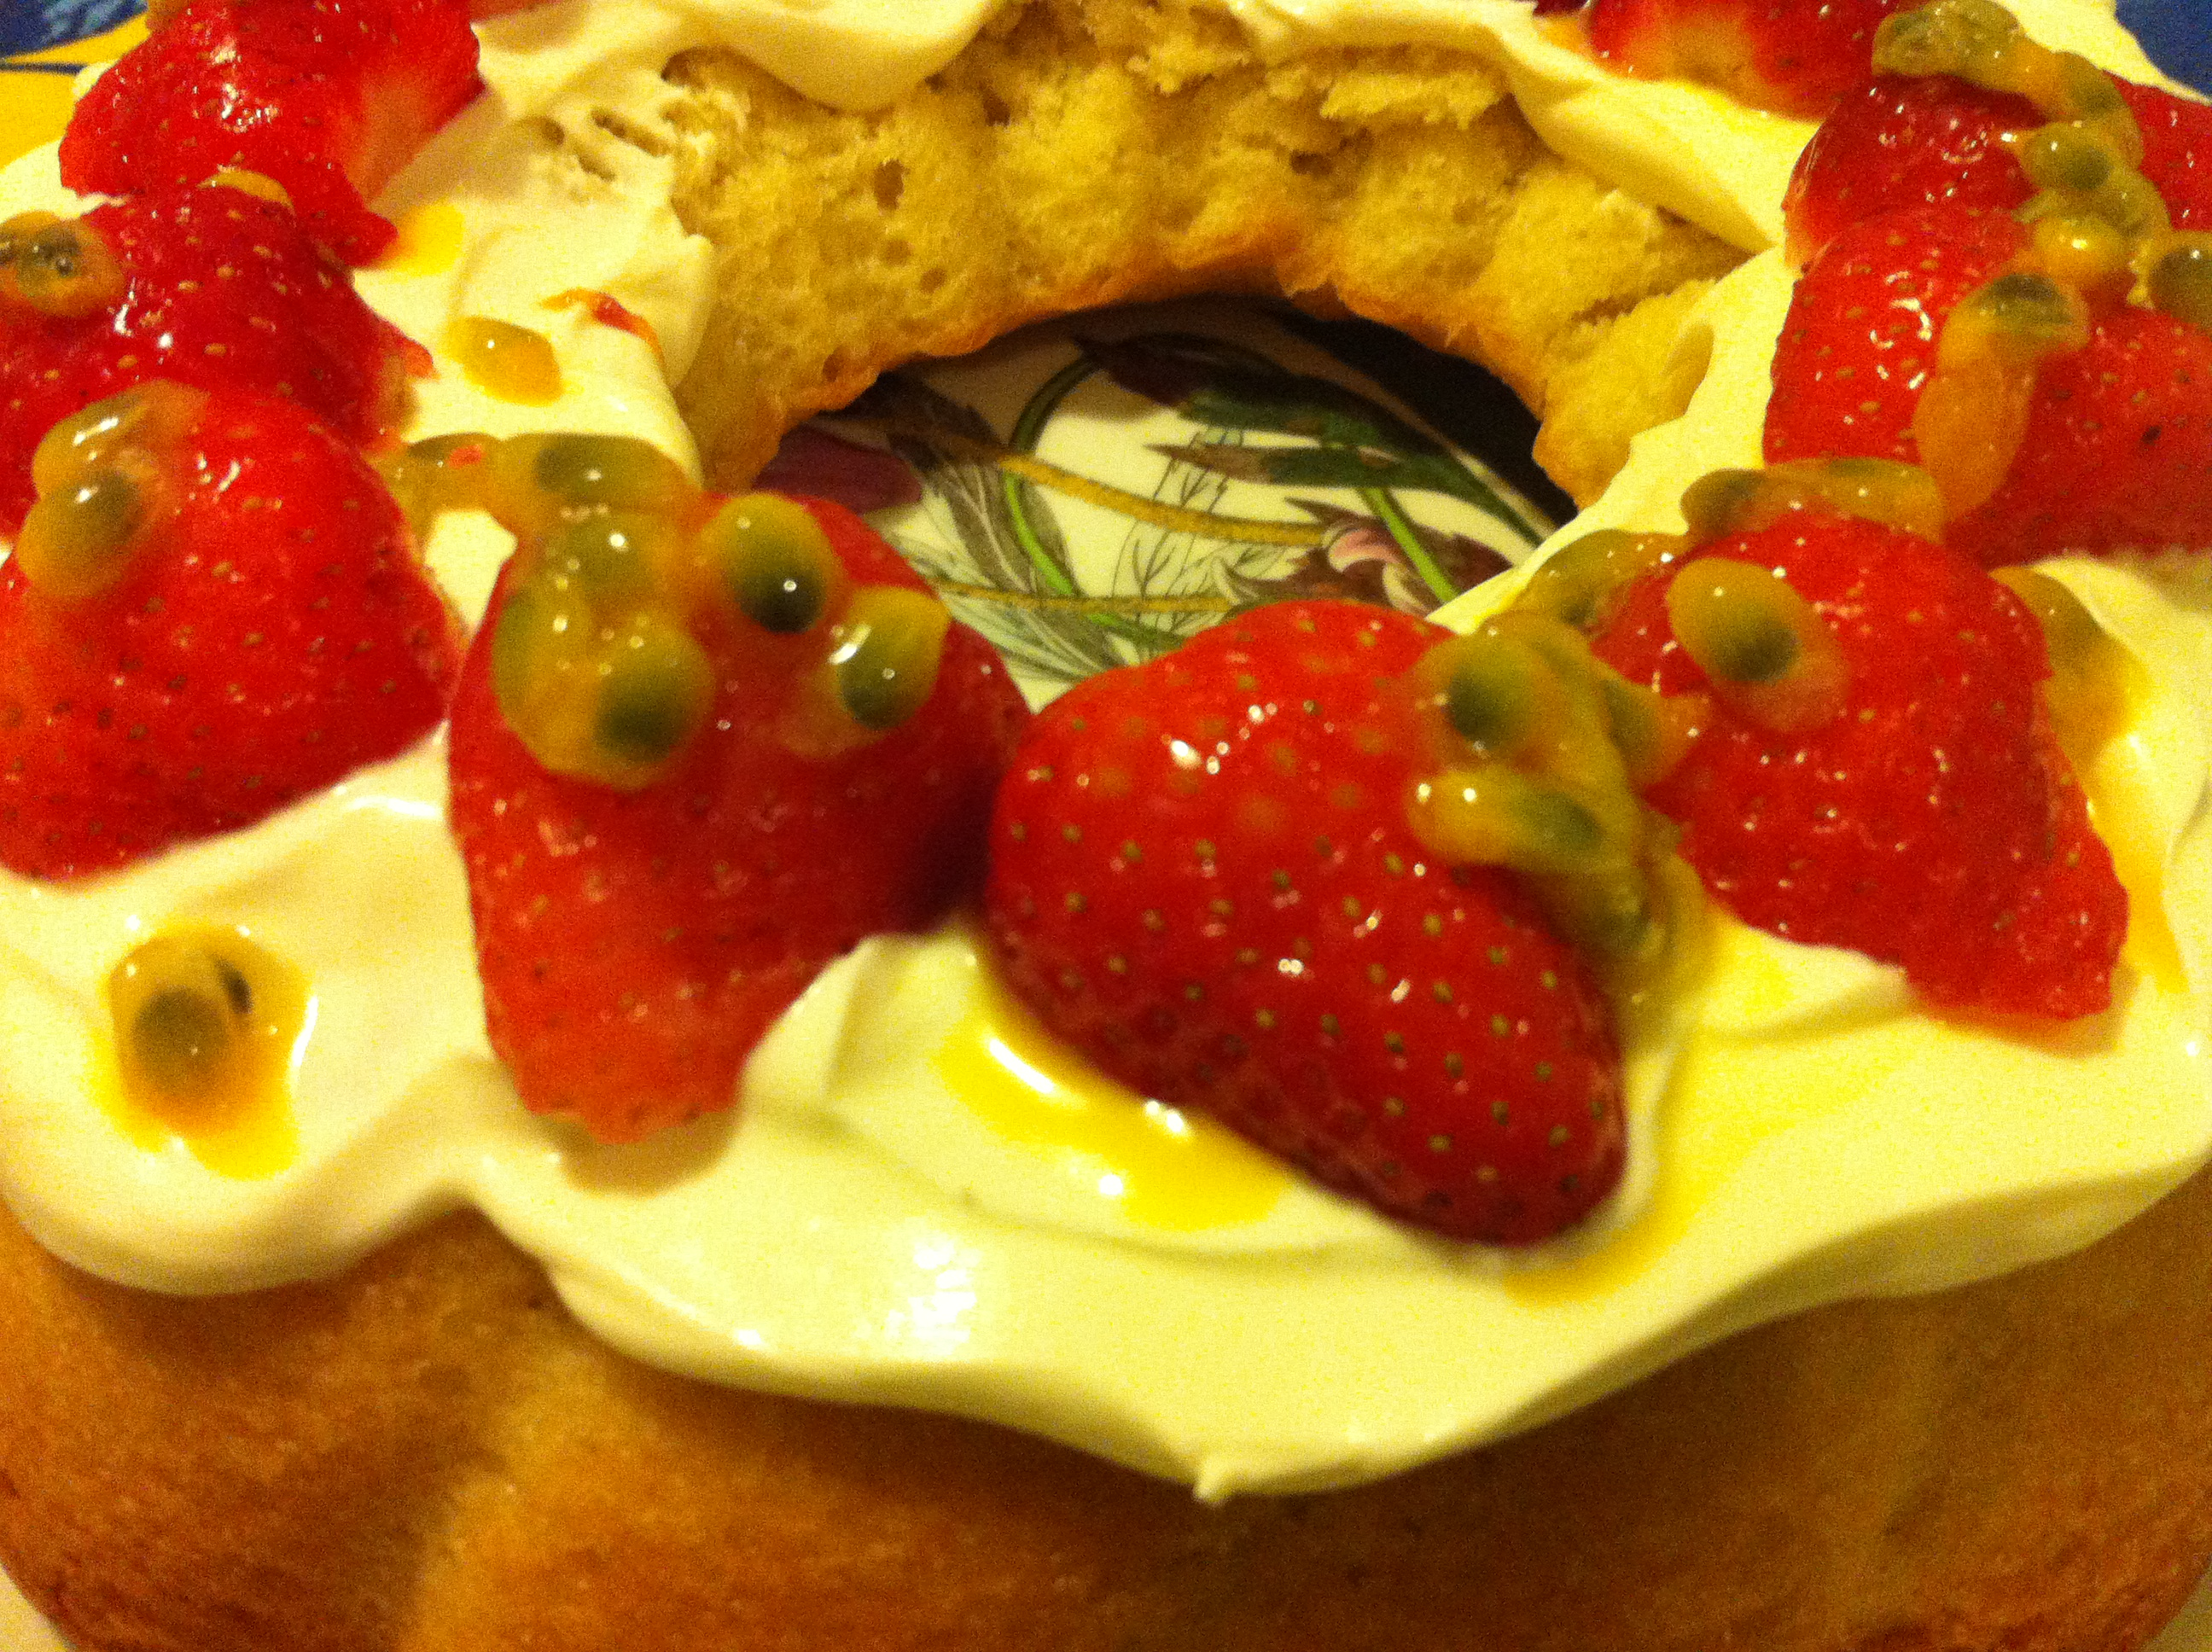 Strawberry and Passion Fruit Cake